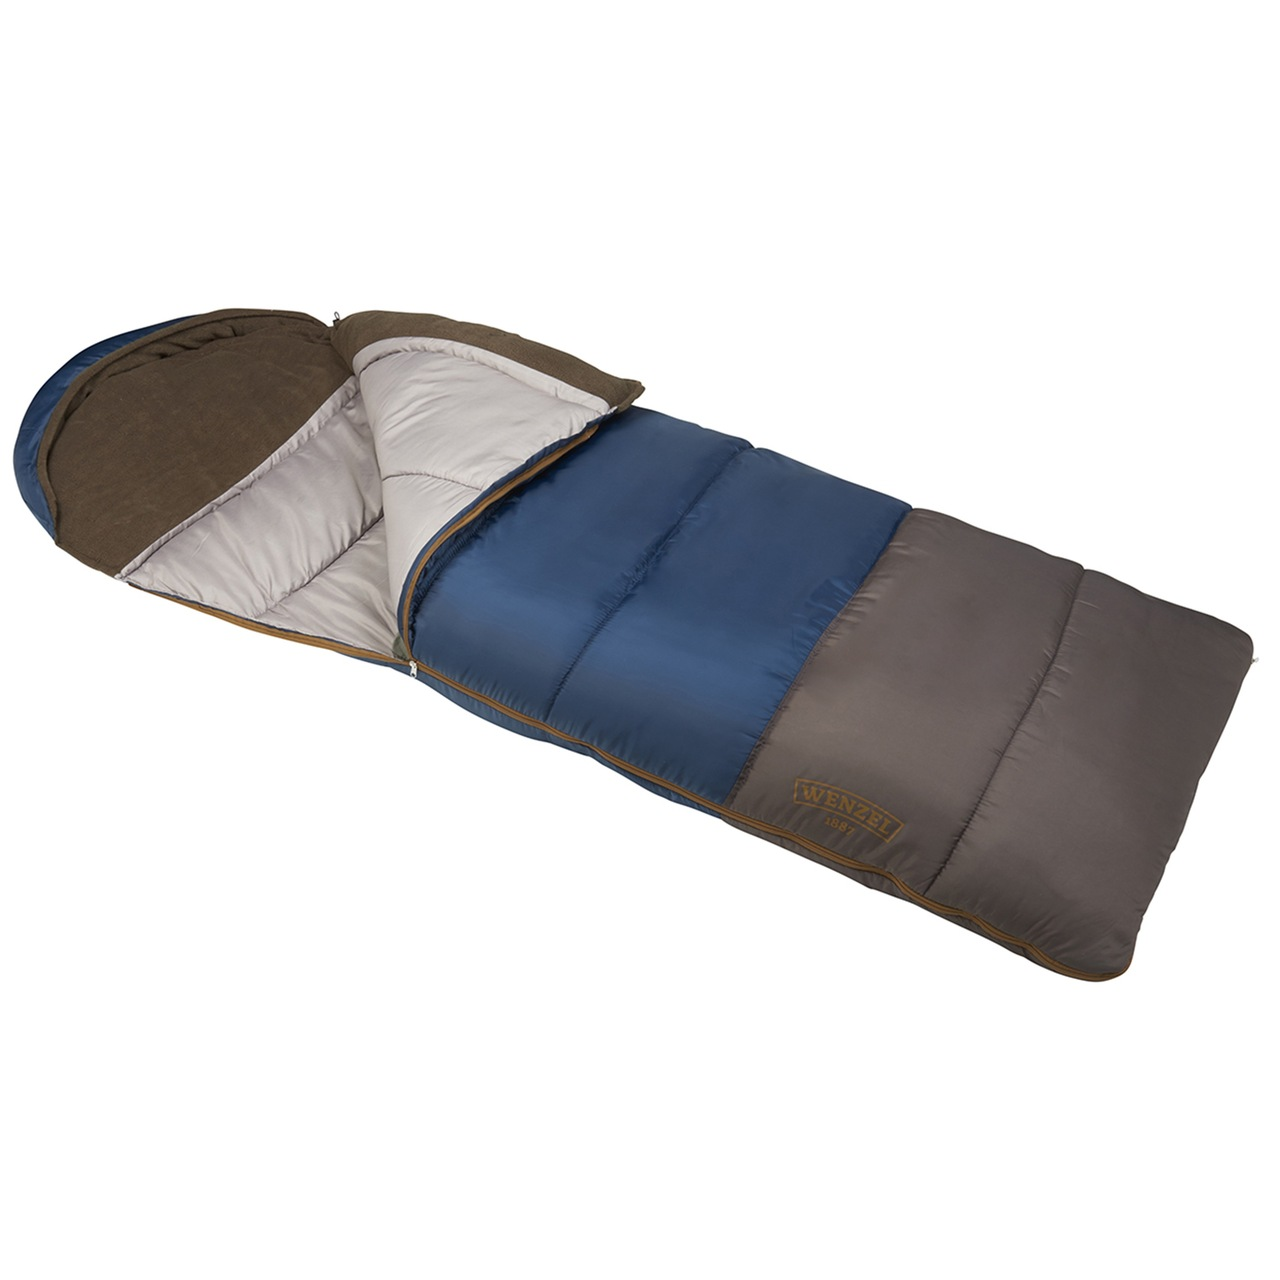 Wenzel Monterey 30°-40° Hooded Sleeping Bag